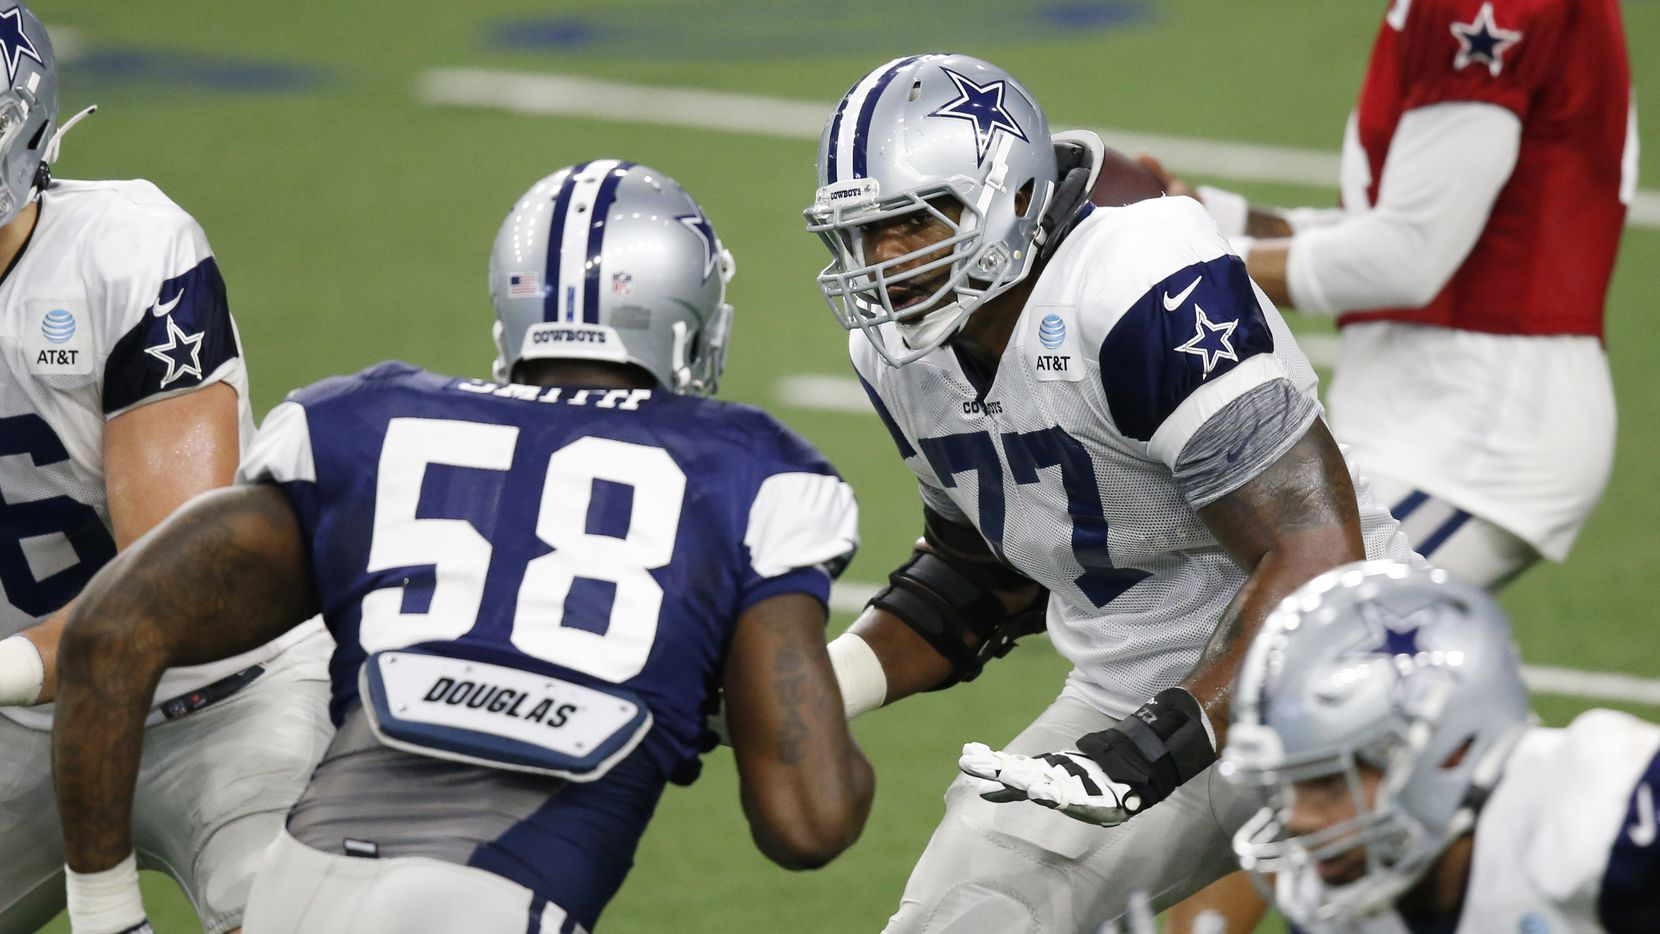 Dallas Cowboys offensive tackle Tyron Smith (77) looks to block Dallas Cowboys defensive end Aldon Smith (58) during training camp inside the Ford Center at the Dallas Cowboys headquarters at The Star in Frisco, Texas on Tuesday, August 18, 2020.